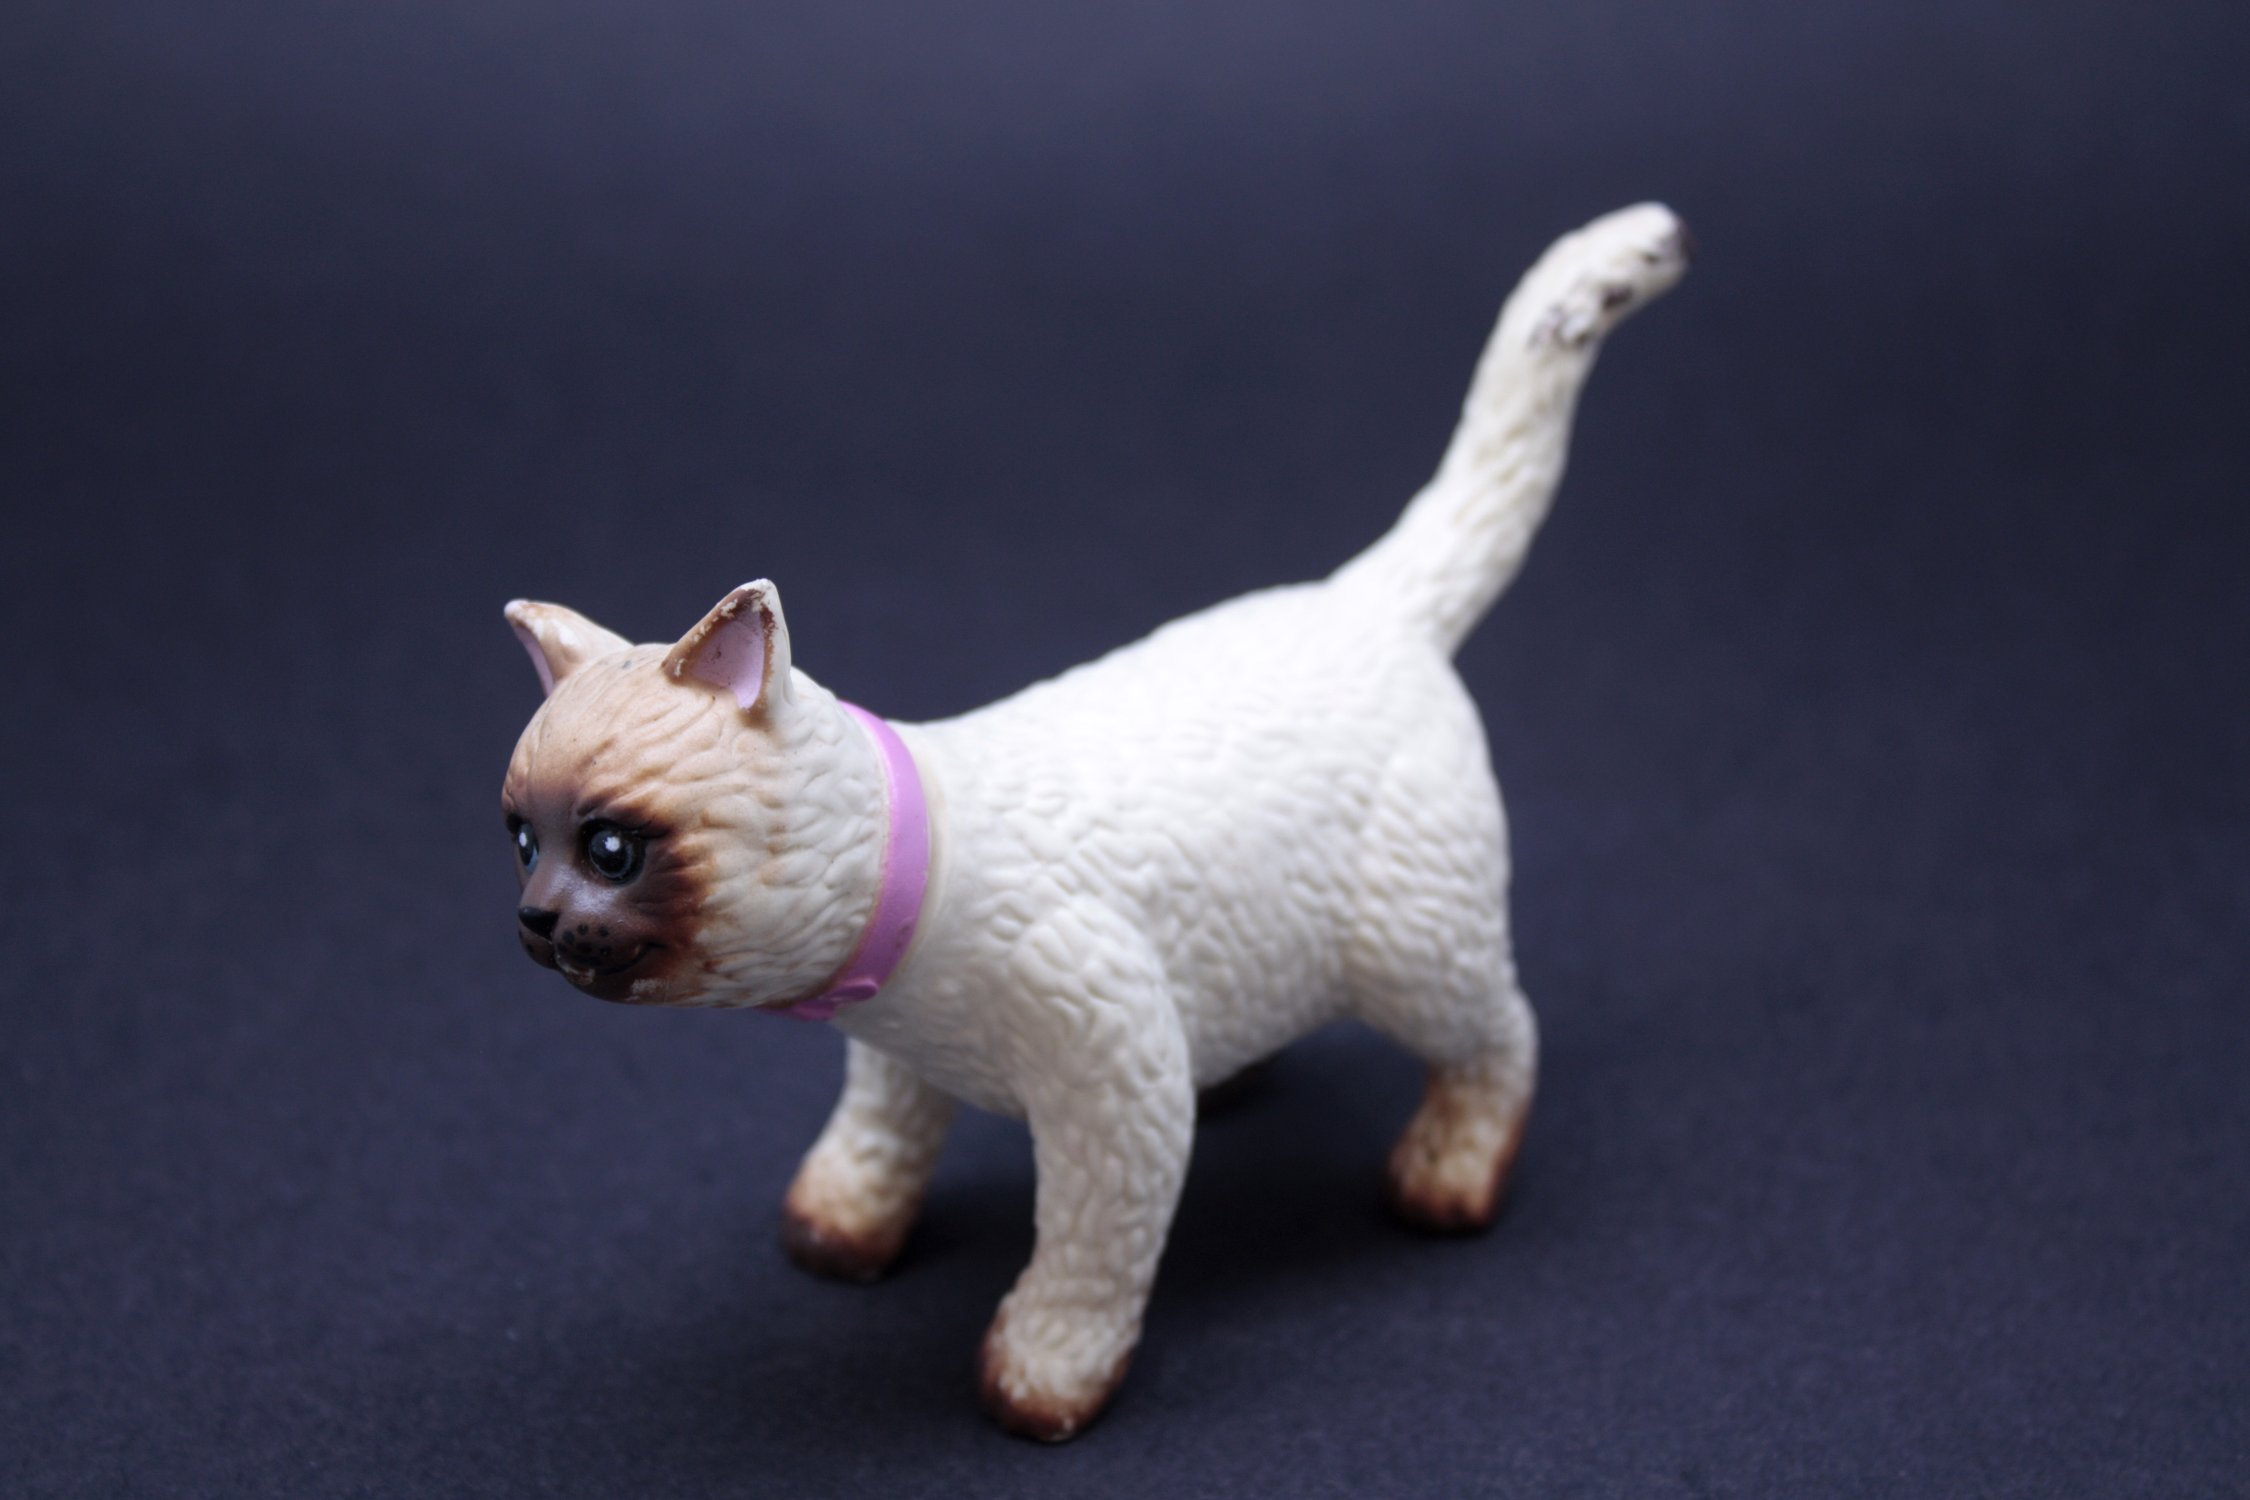 Rubber toy cat photo